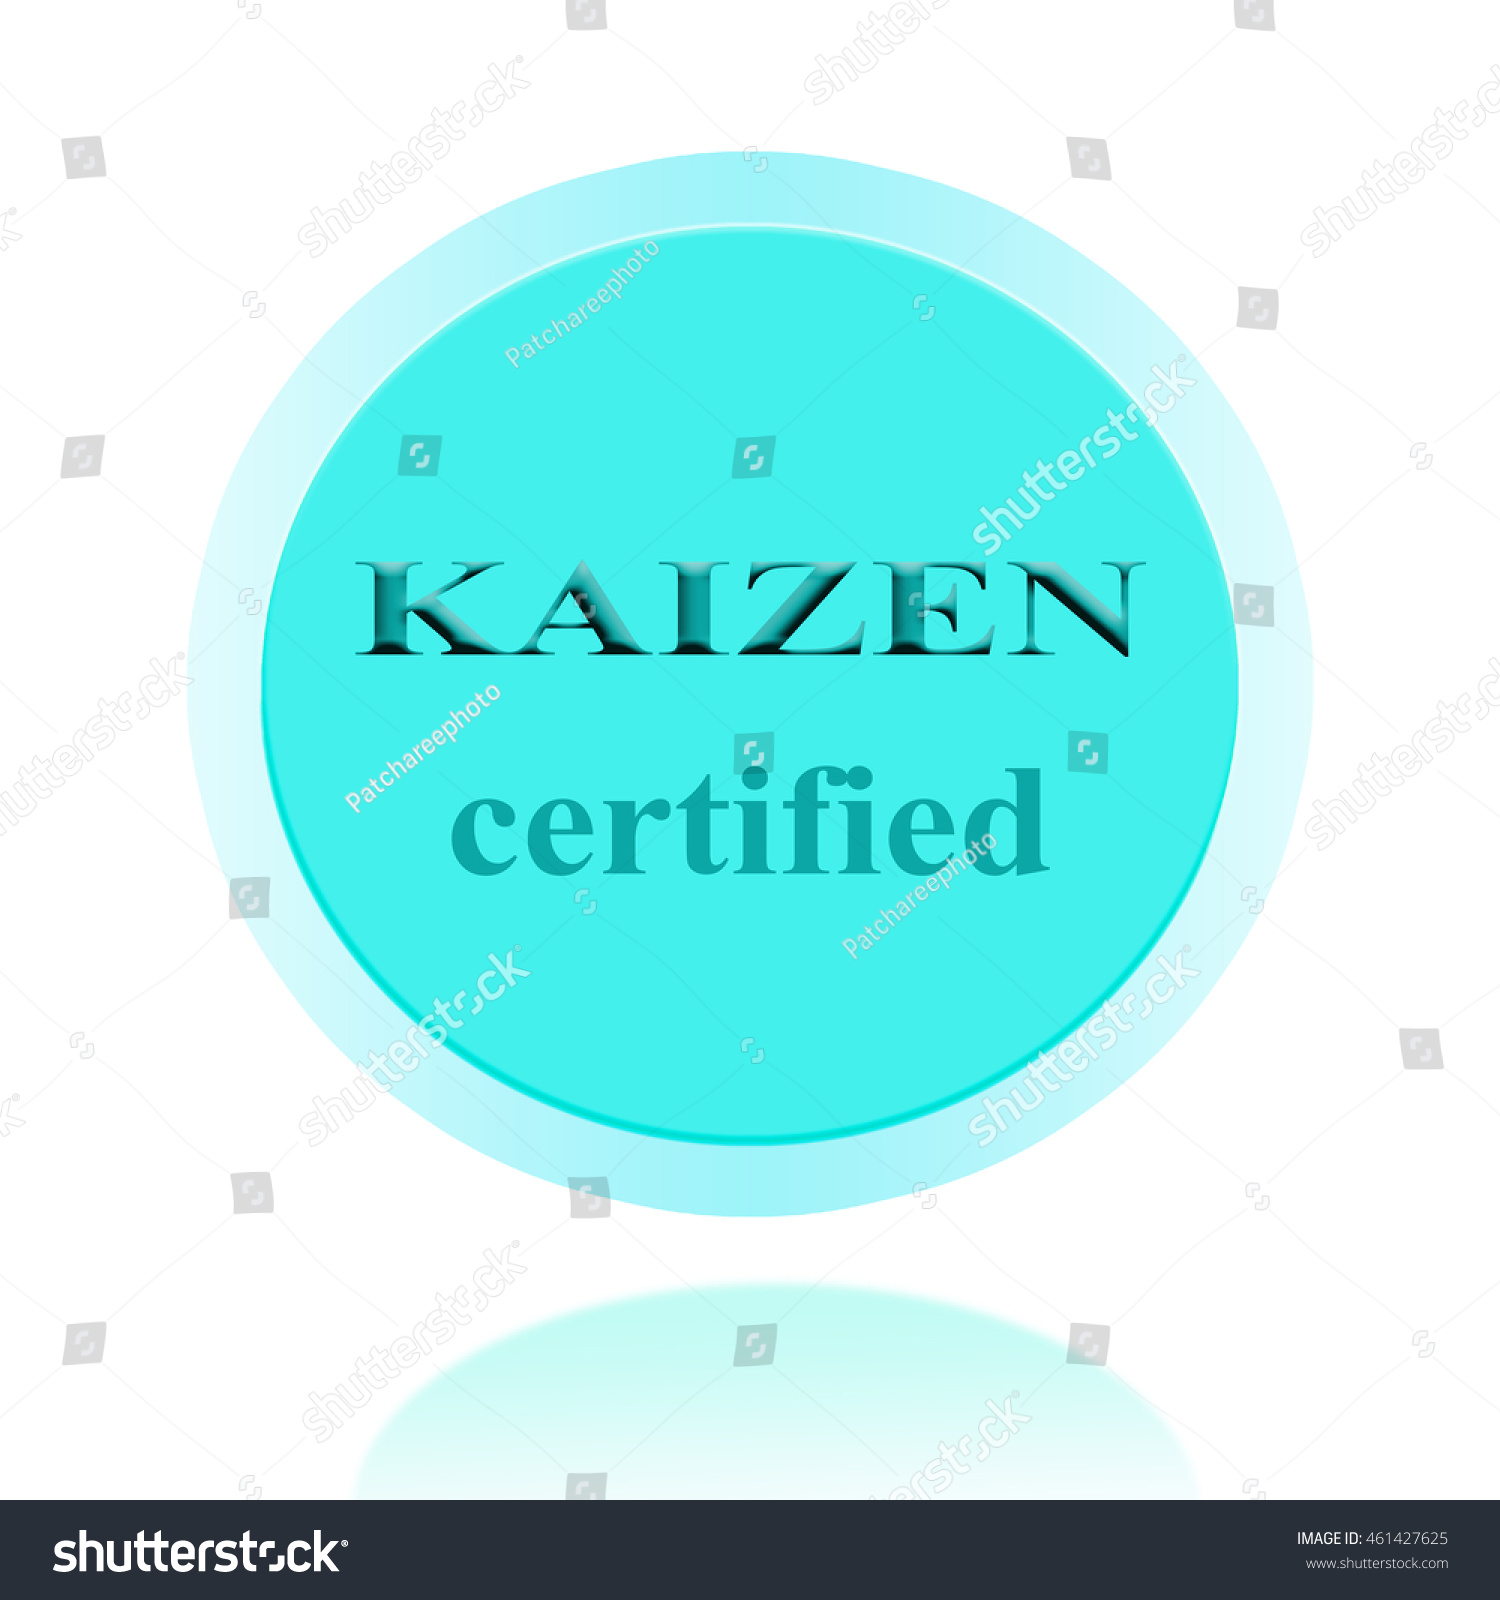 Kaizen certified icon symbol image concept stock illustration kaizen certified icon or symbol image concept design for business and use in company system 1betcityfo Gallery